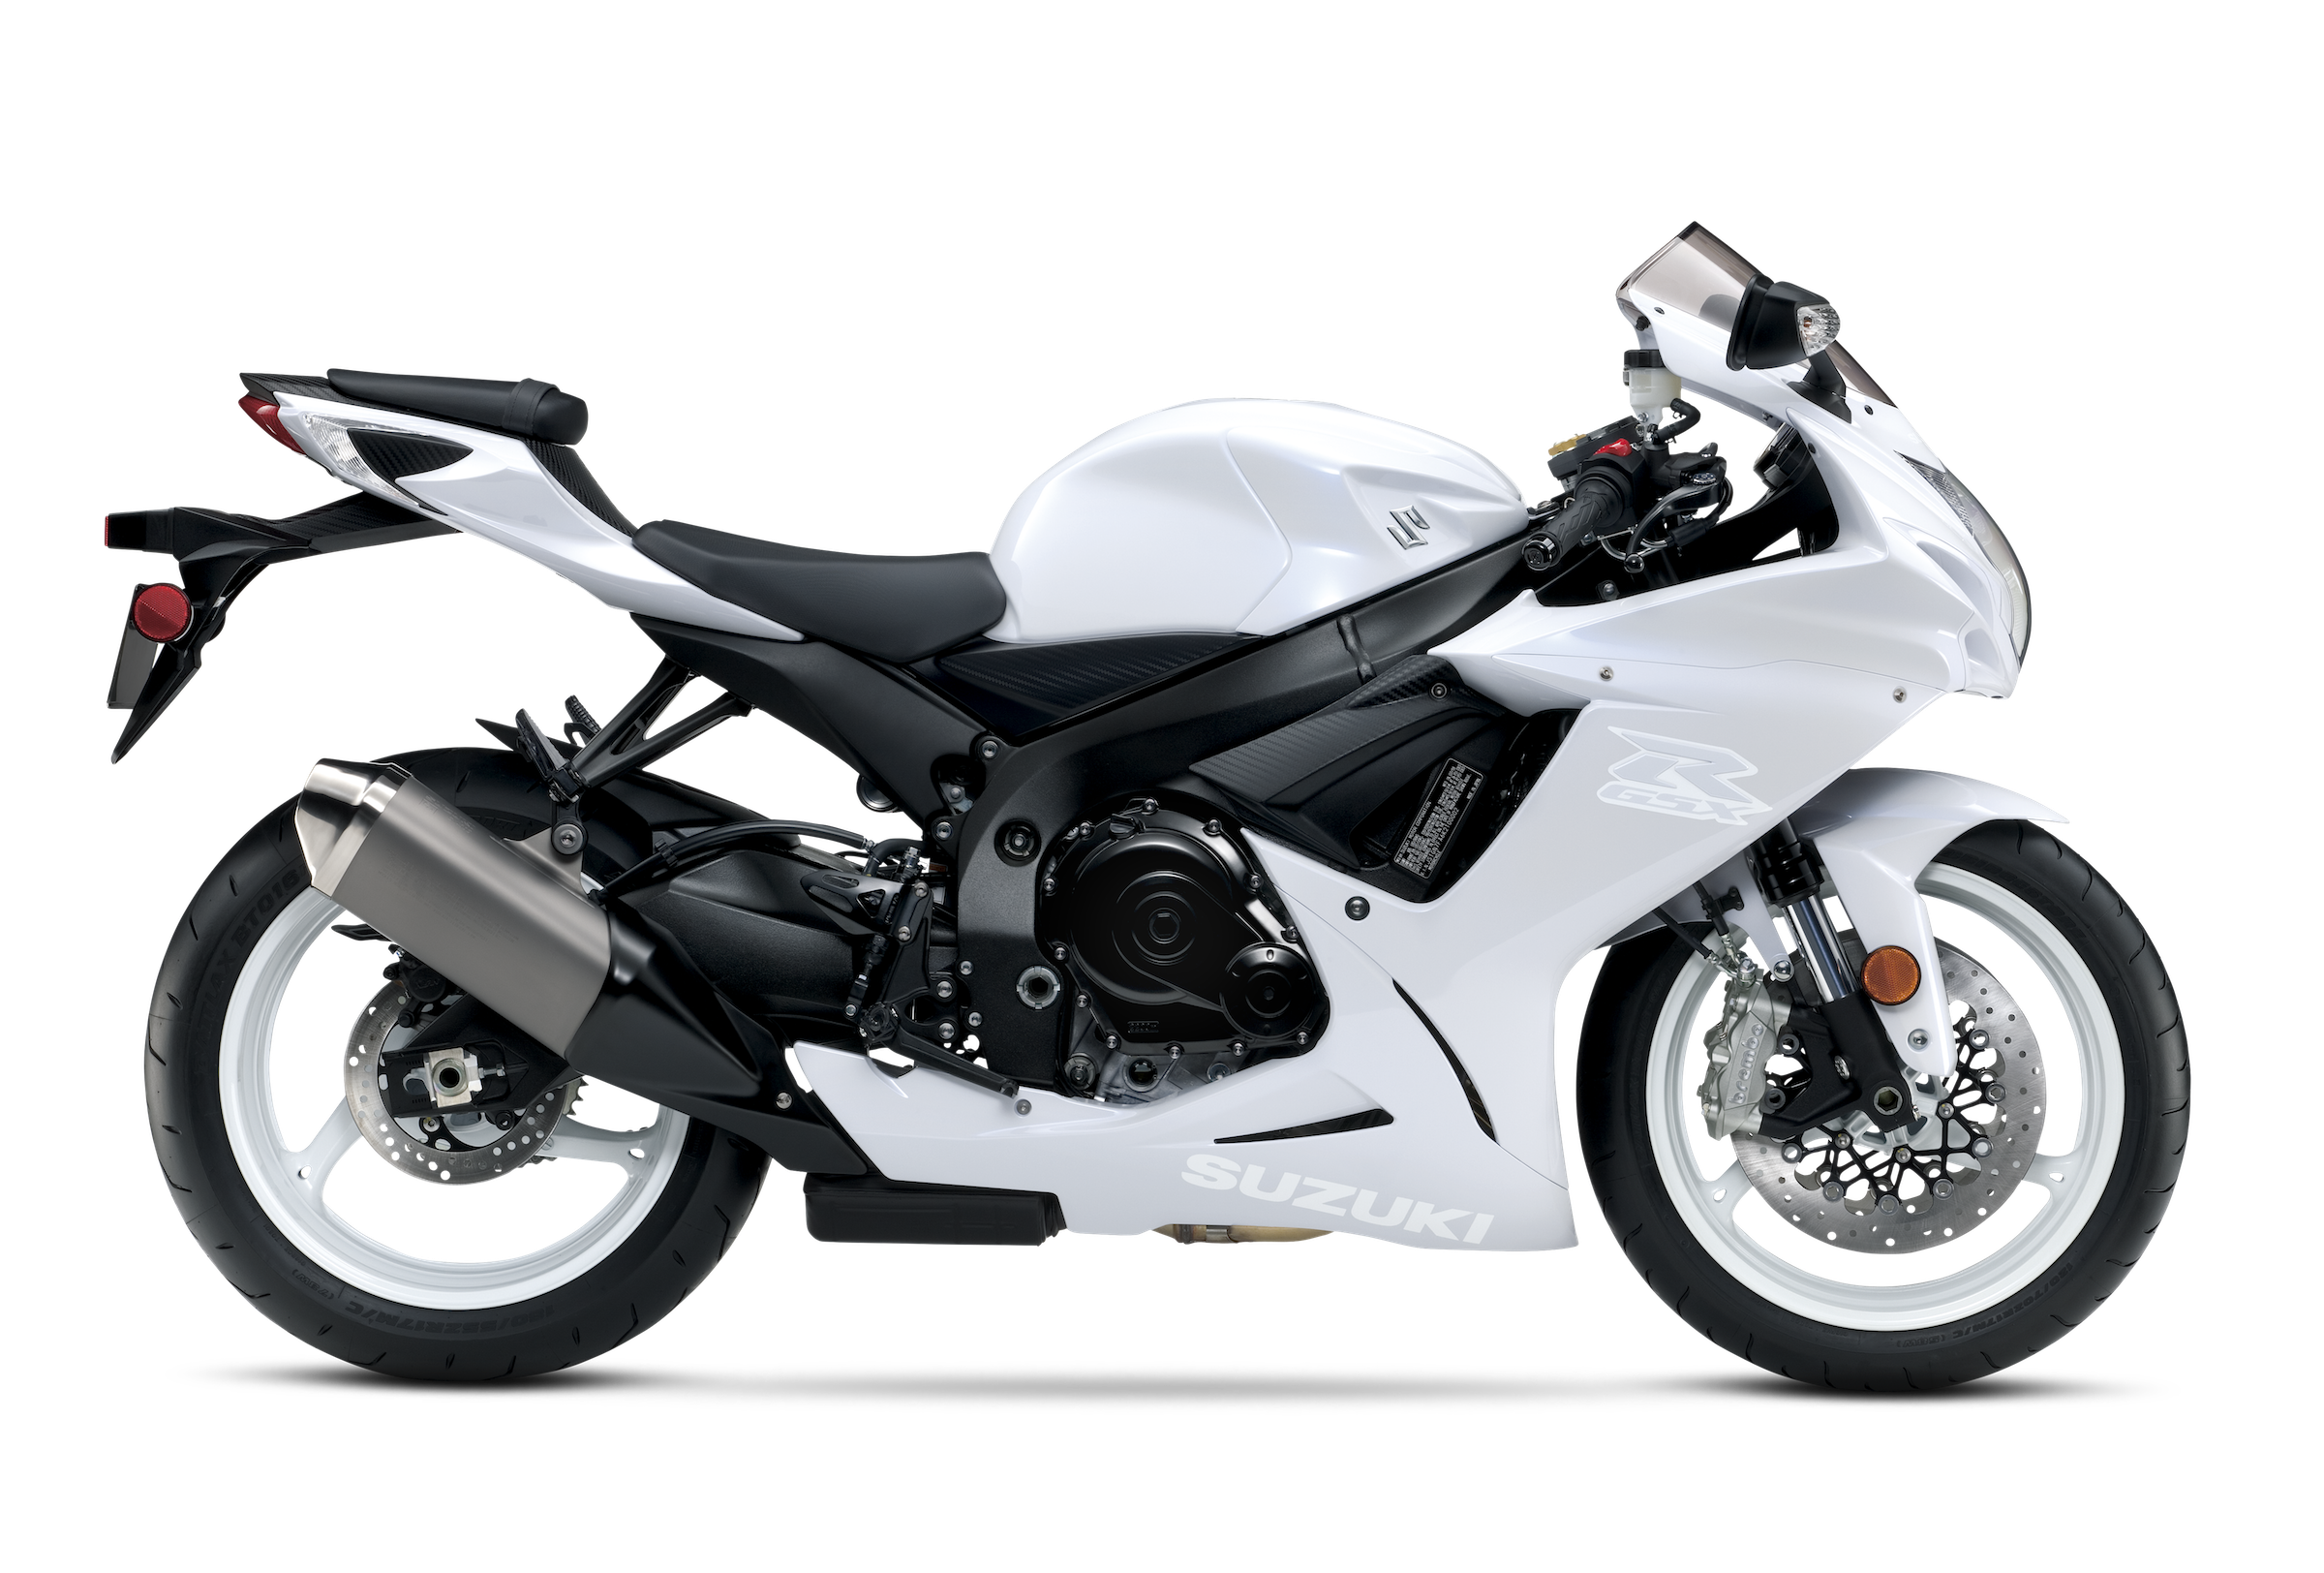 Suzuki Cycles - Product Lines - Cycles - Products - GSX-R600 - 2019